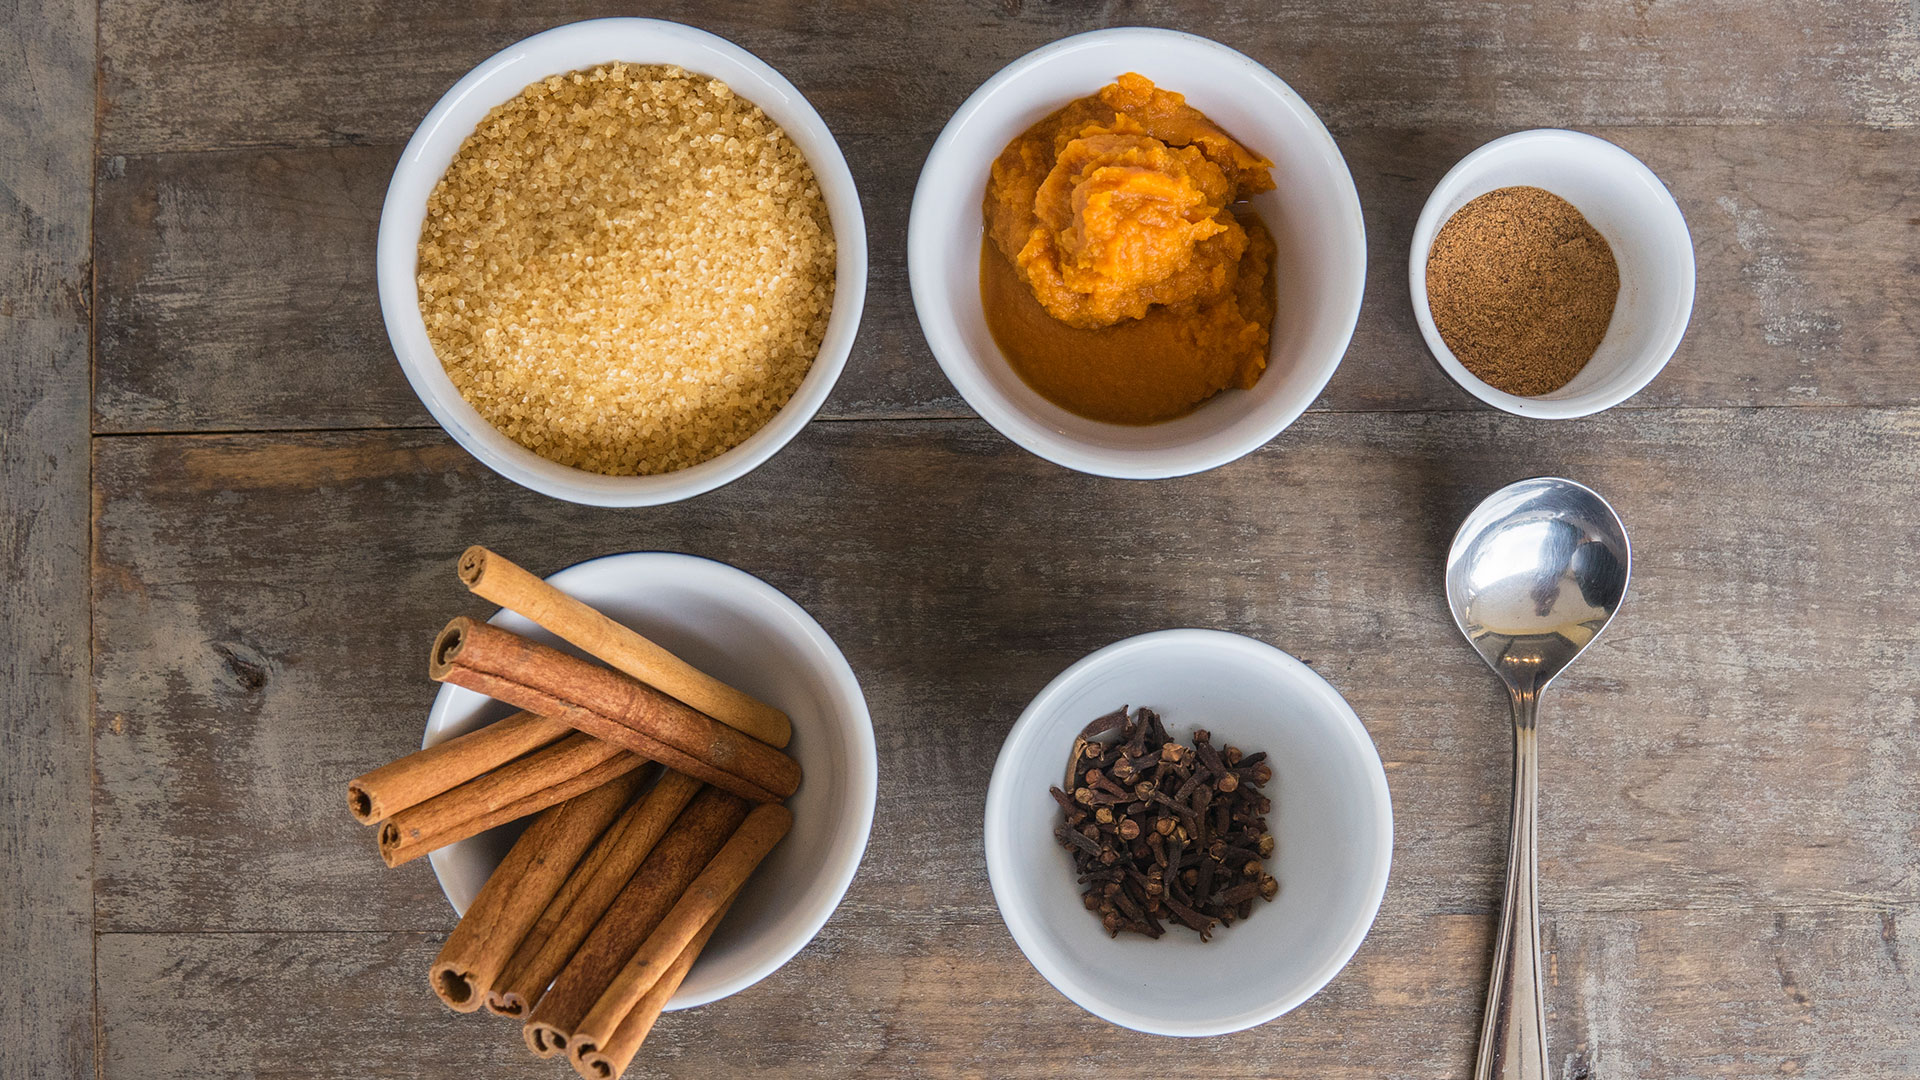 Pumpkin spice ingredients in white bowls and a serving spoon on a wooden tabletop.